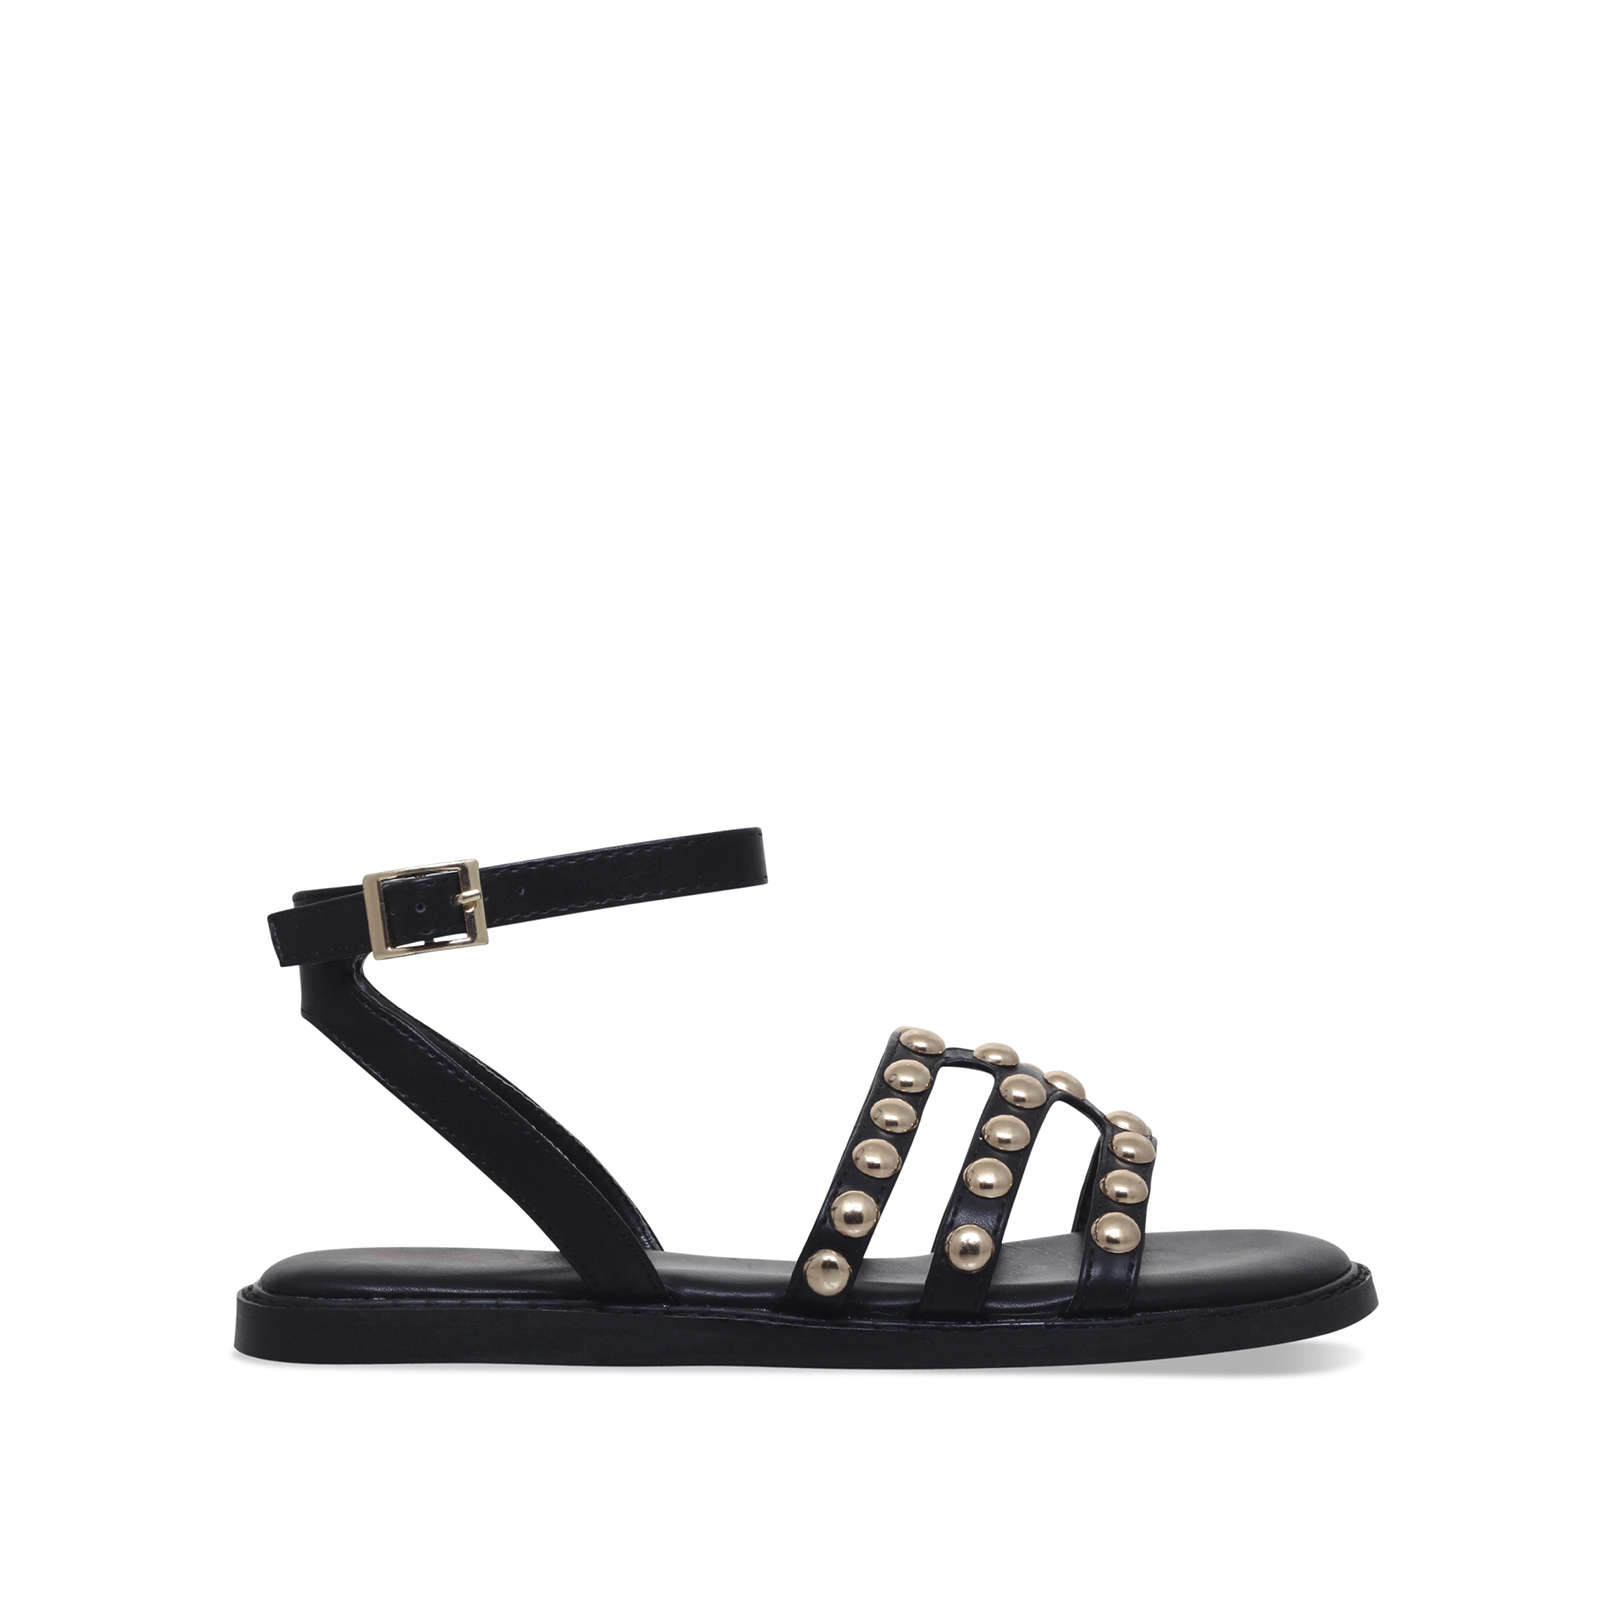 41dbe40a4d9e JEMIMA Dolcis Jemima Black Summer Sandals by DOLCIS